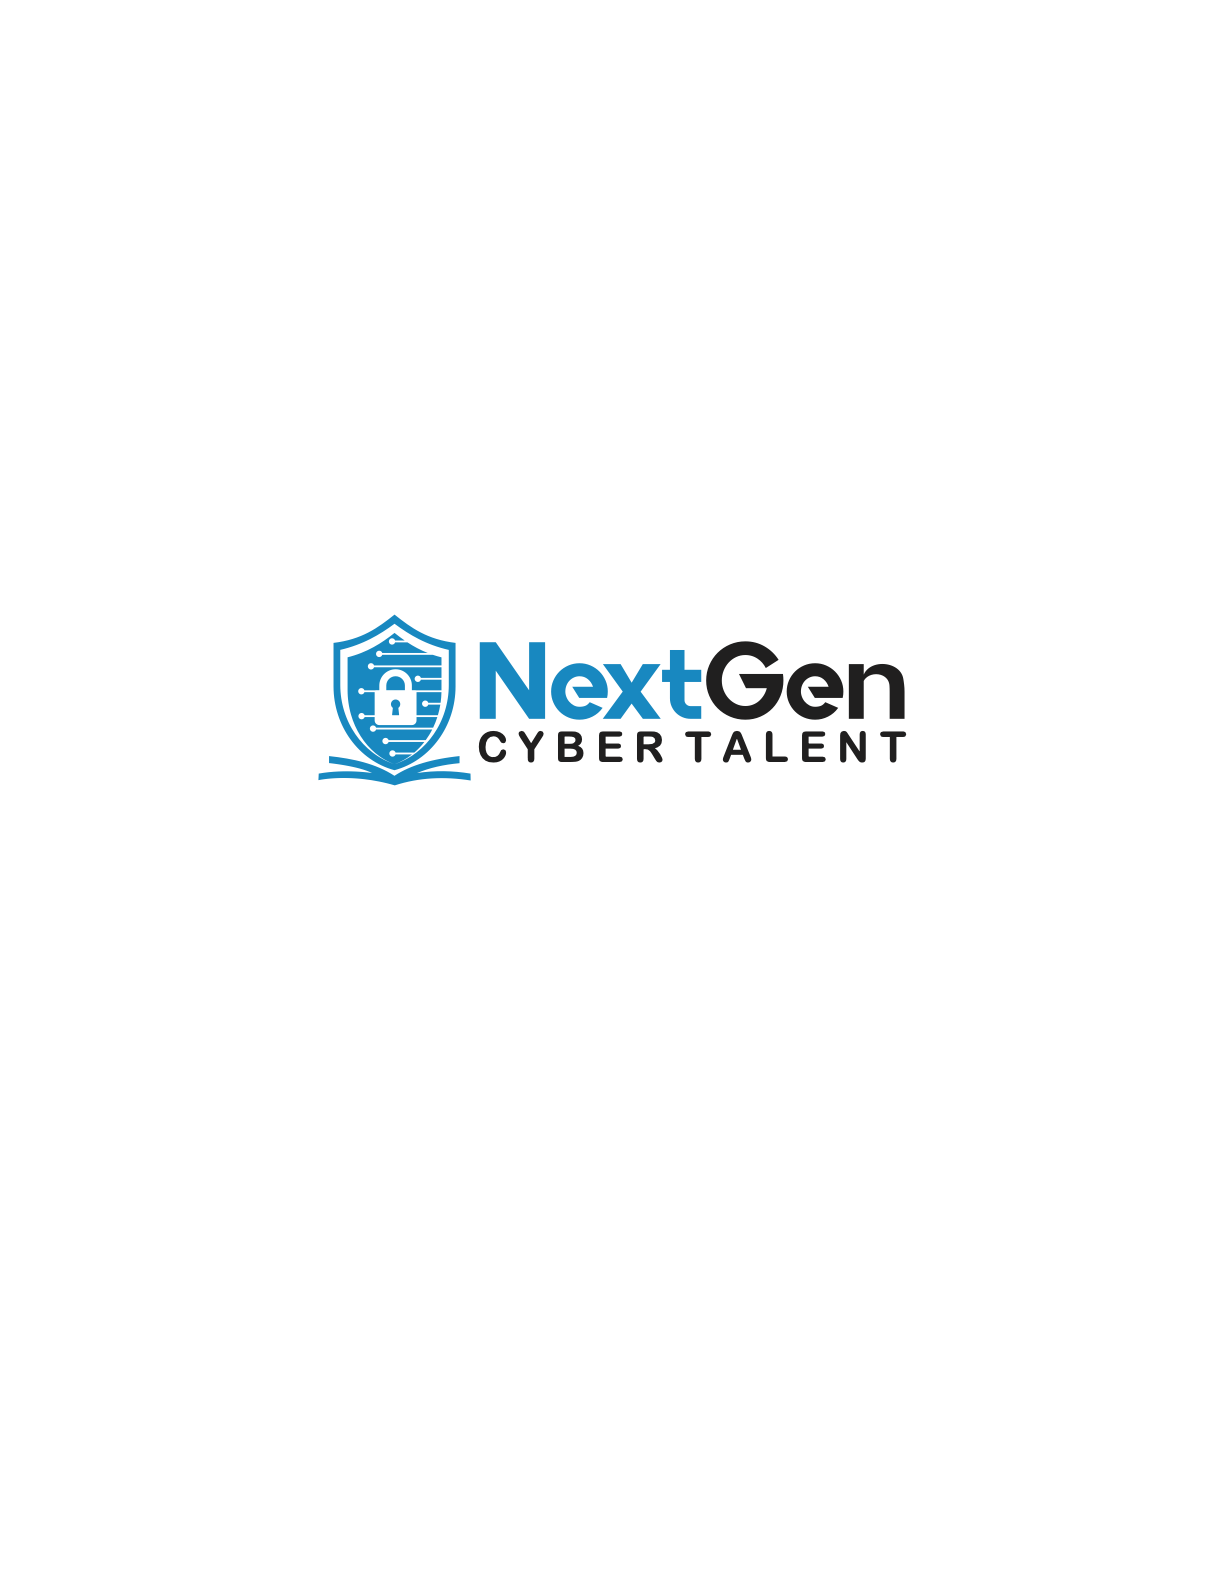 [UPDATED]: NextGen Cyber Talent Announces its First Pilot Cohort and Governing Board 16